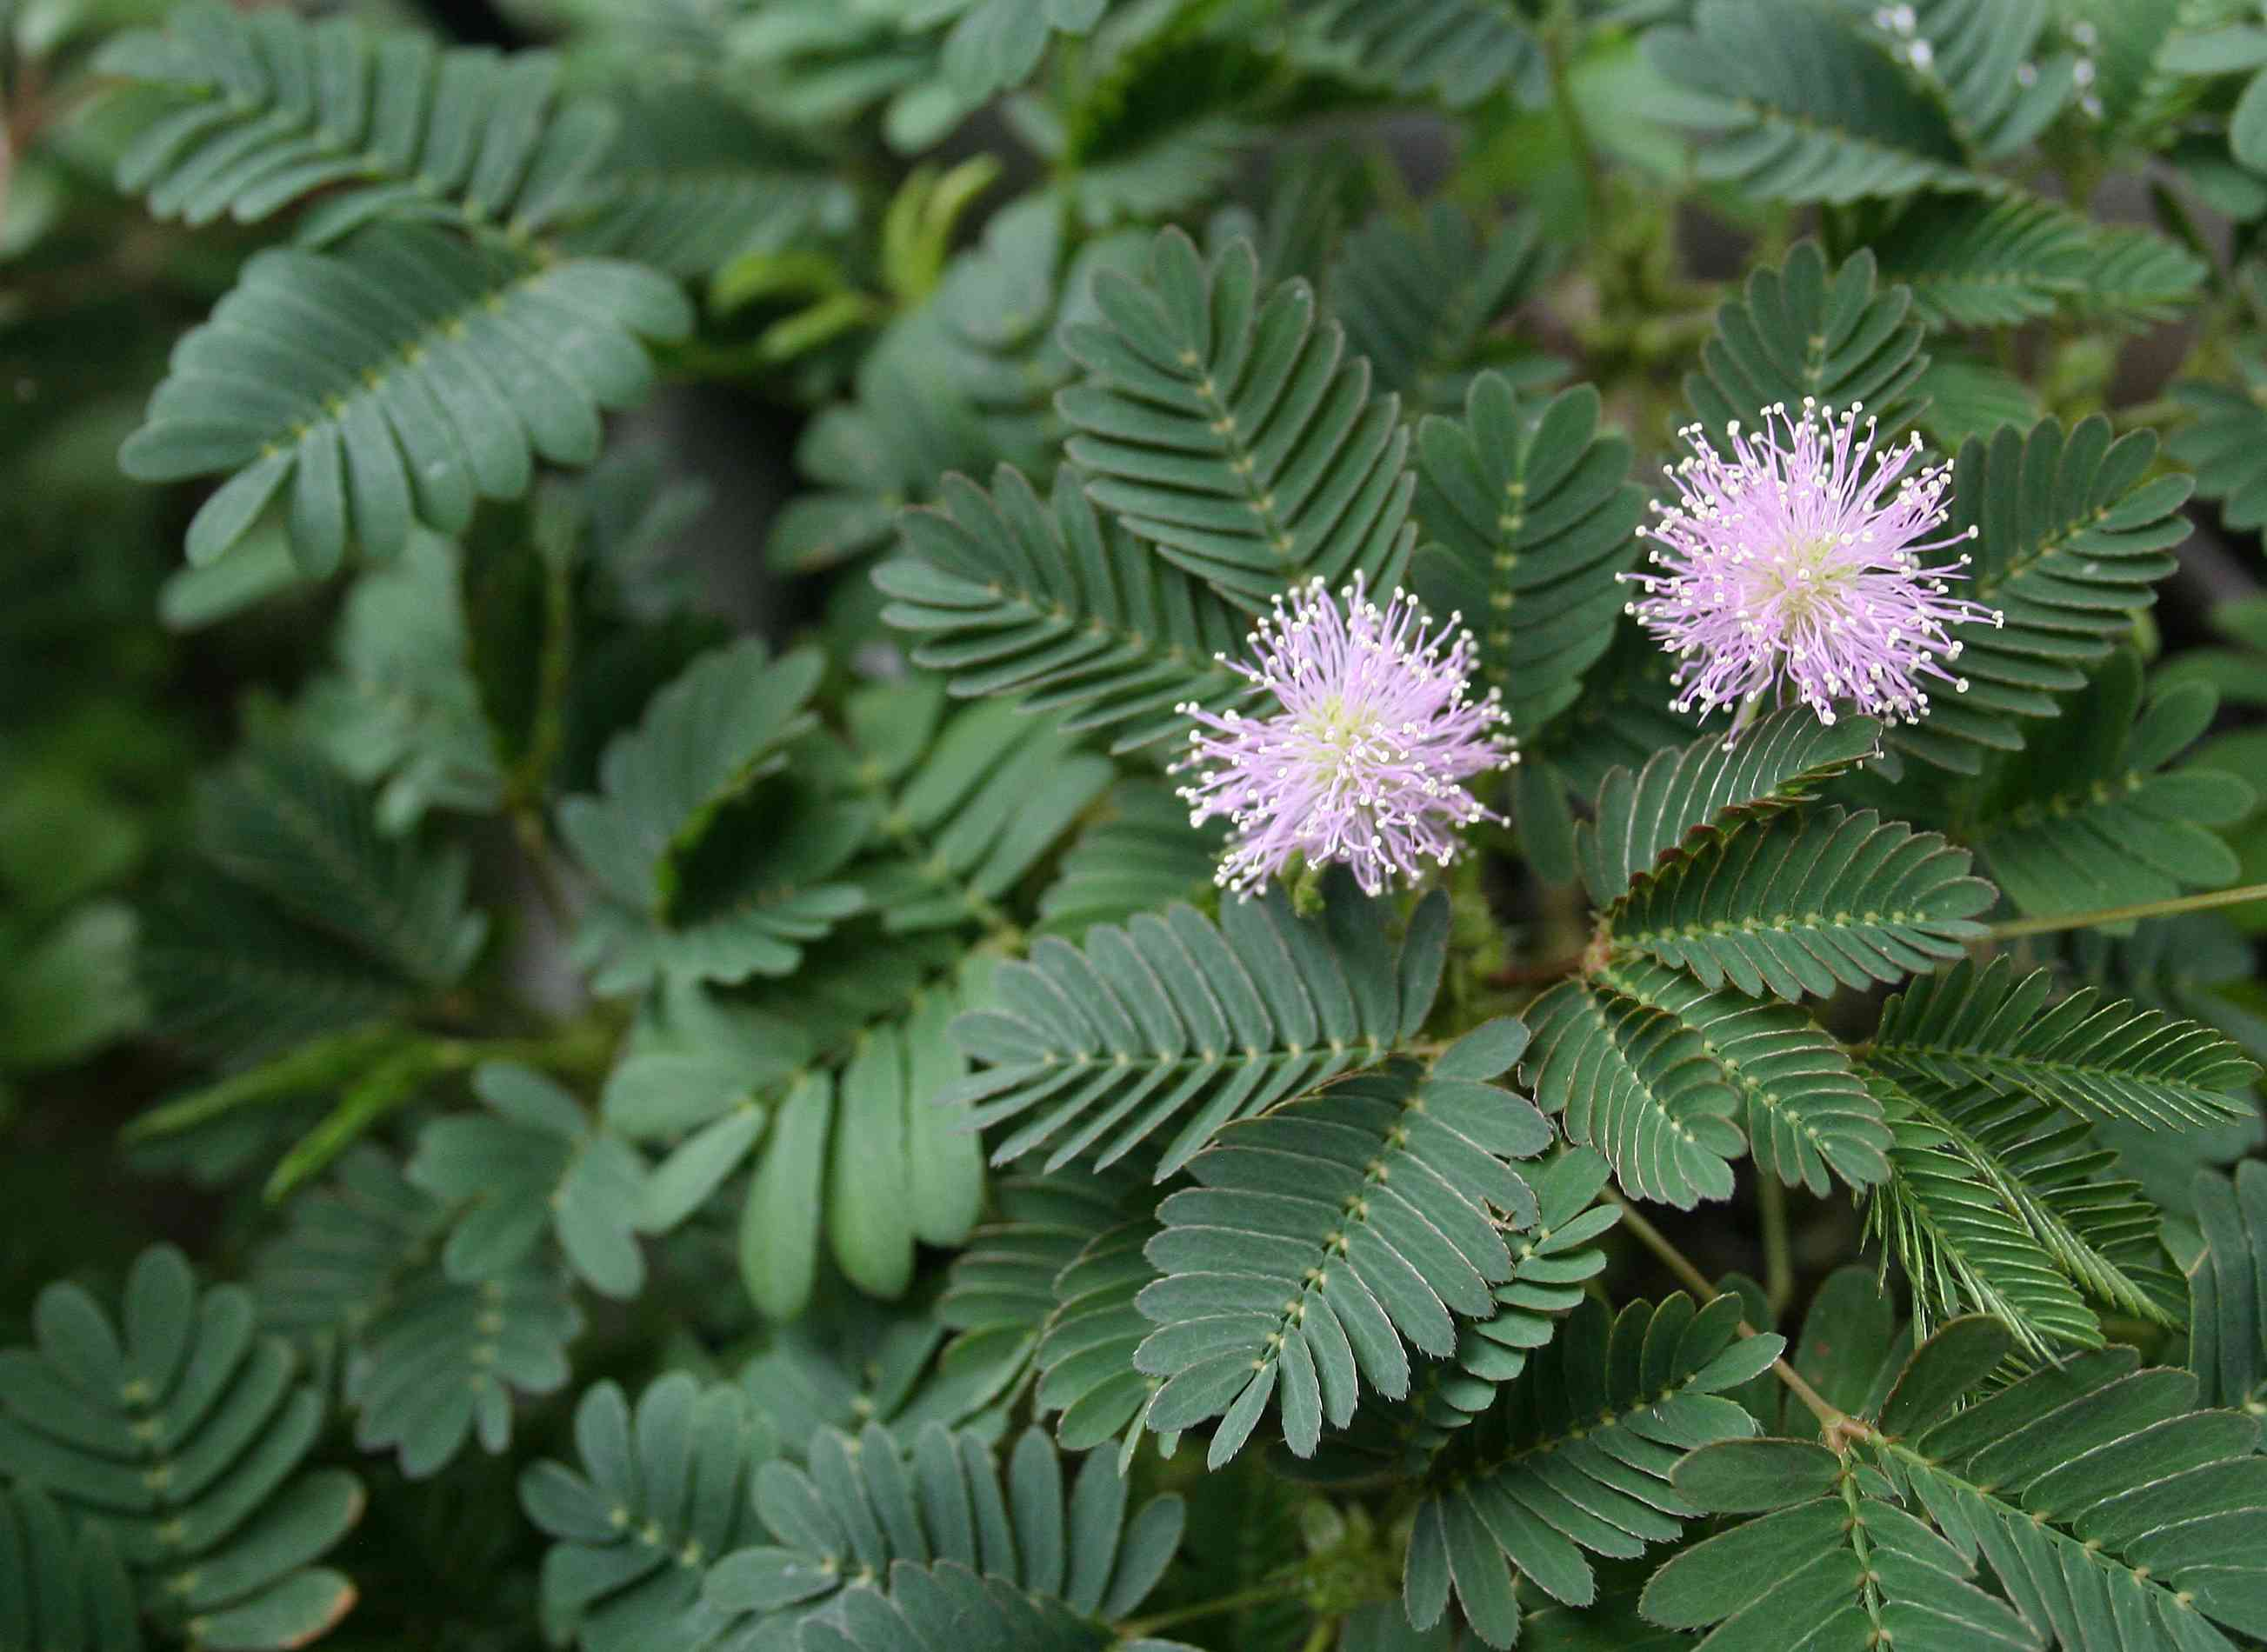 Mimosa pudica (sensitive plant) in bloom.